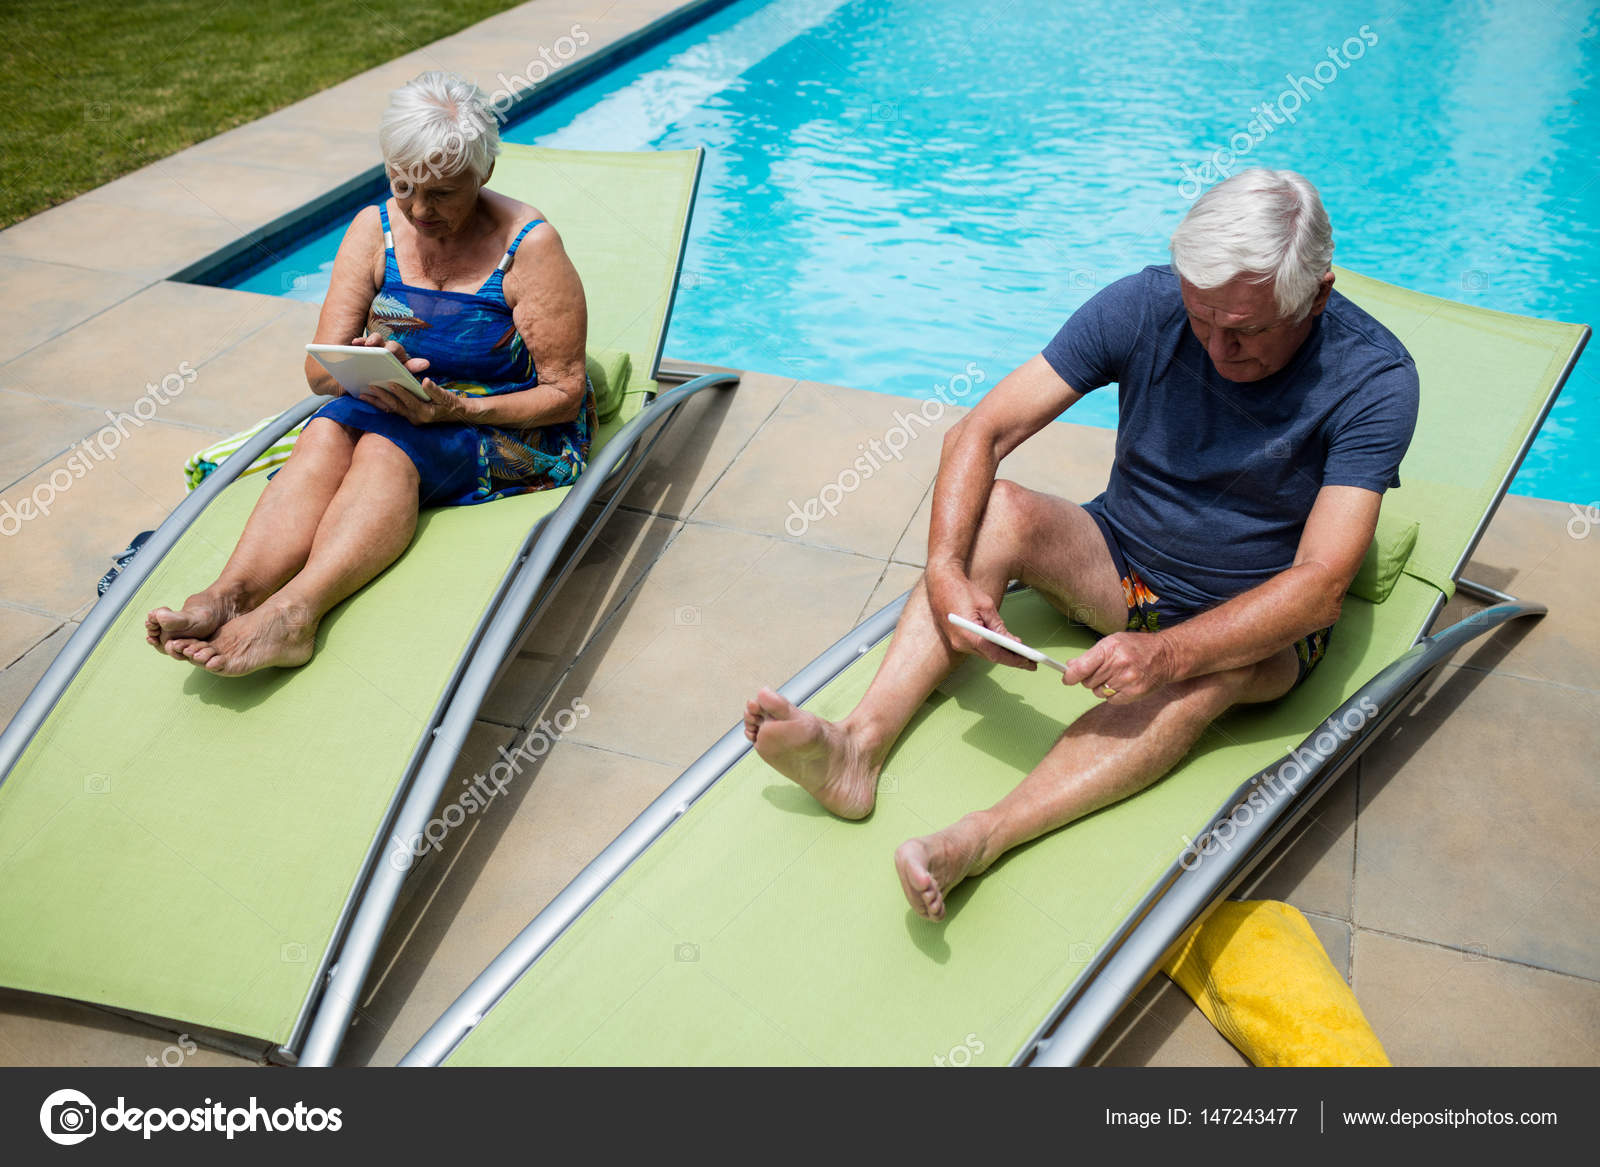 Senior couple using digital tablet on lounge chair u2014 Stock Photo & Senior couple using digital tablet on lounge chair u2014 Stock Photo ...